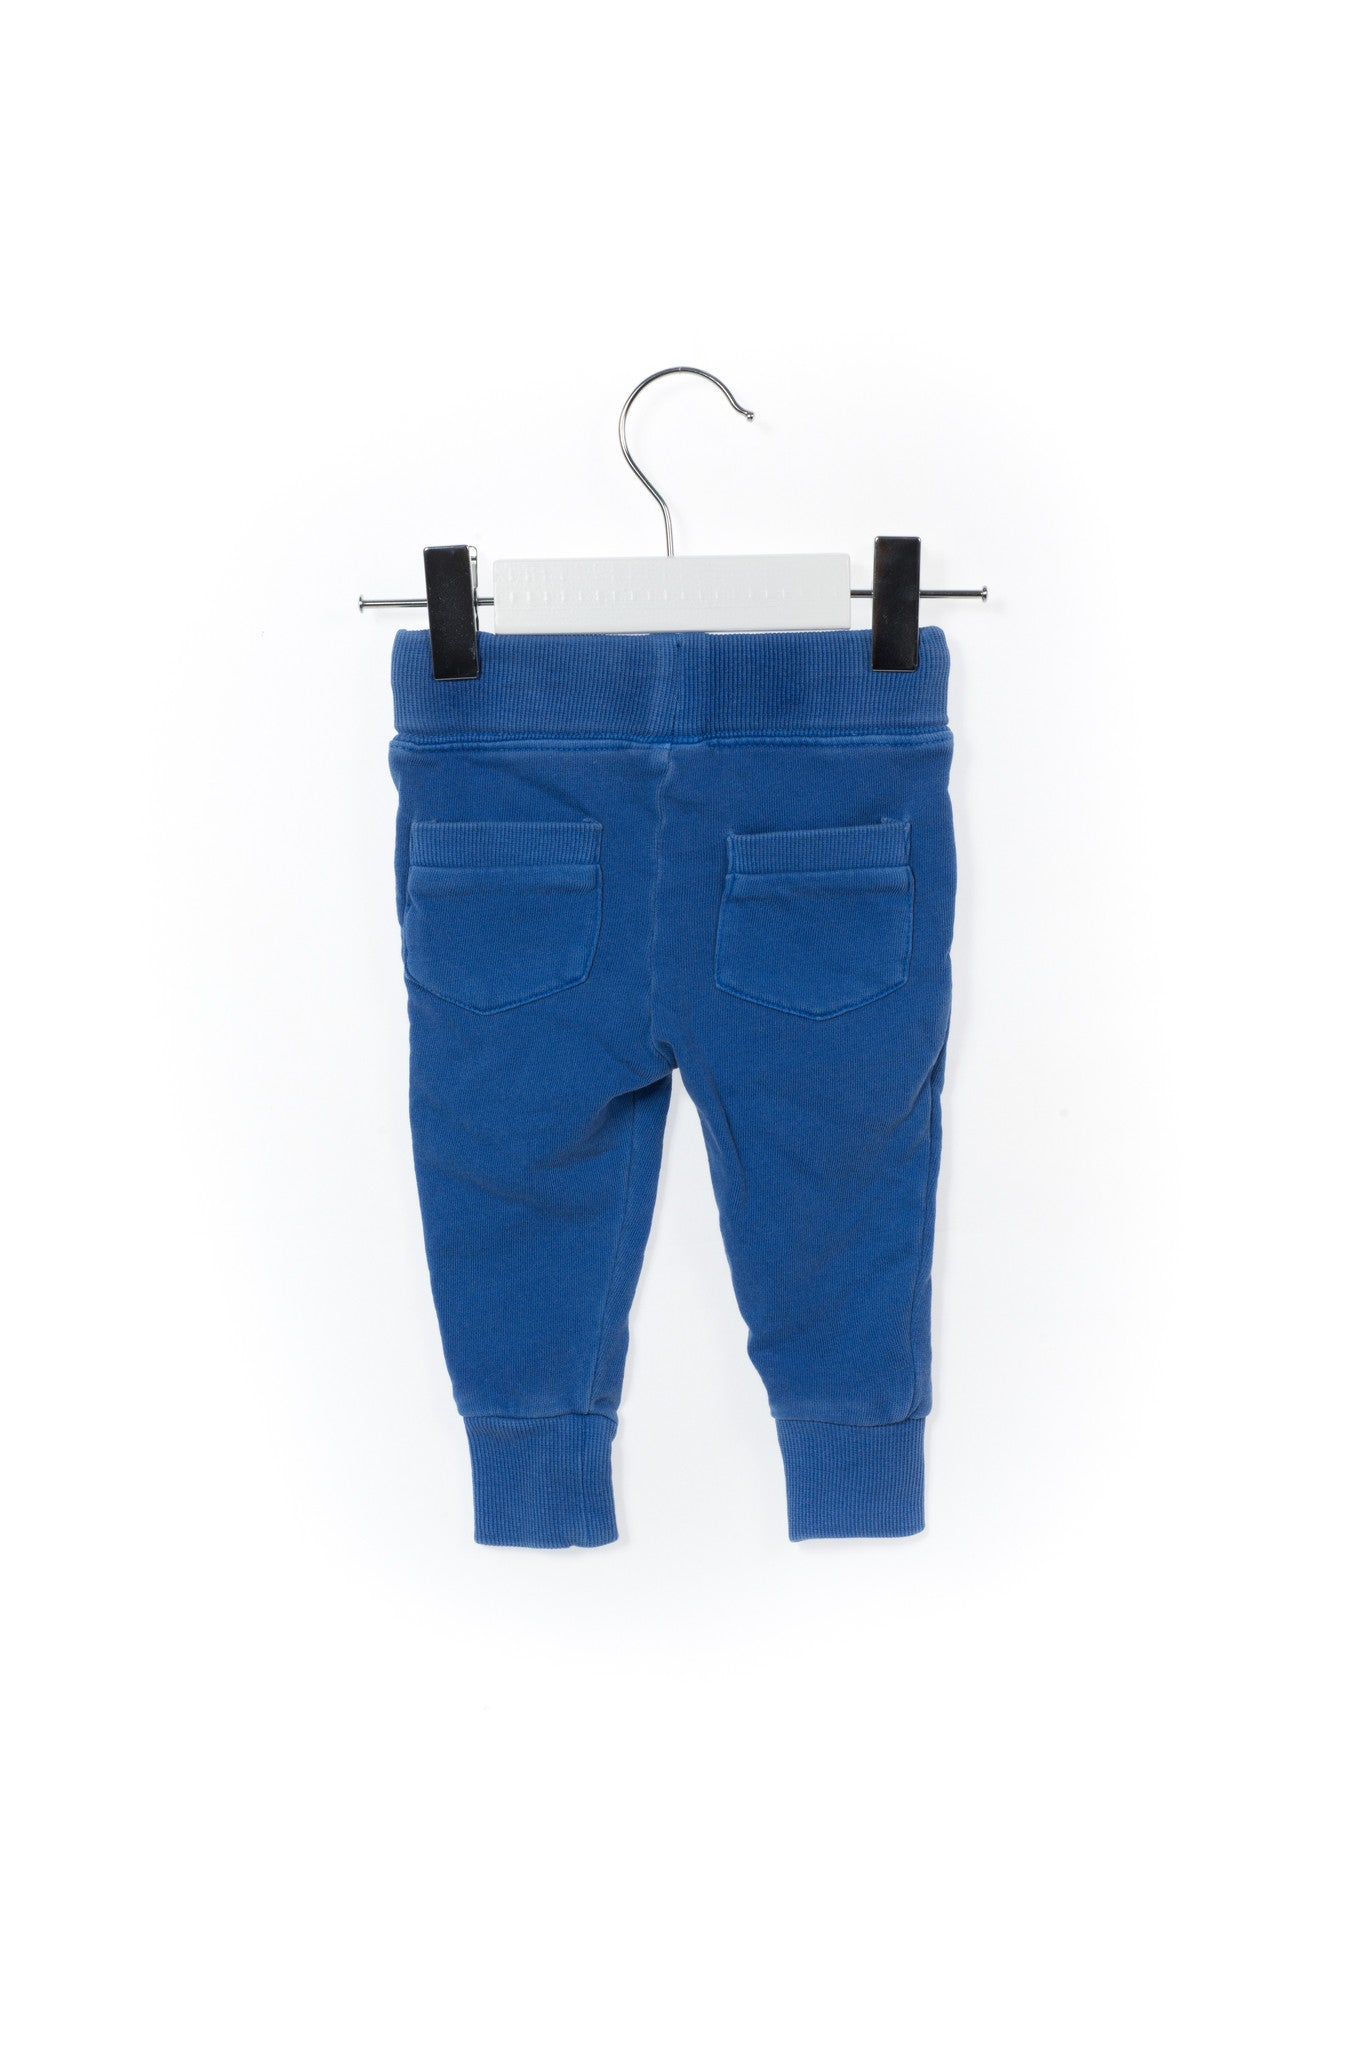 Pants 0-3M, Seed at Retykle - Online Baby & Kids Clothing Up to 90% Off